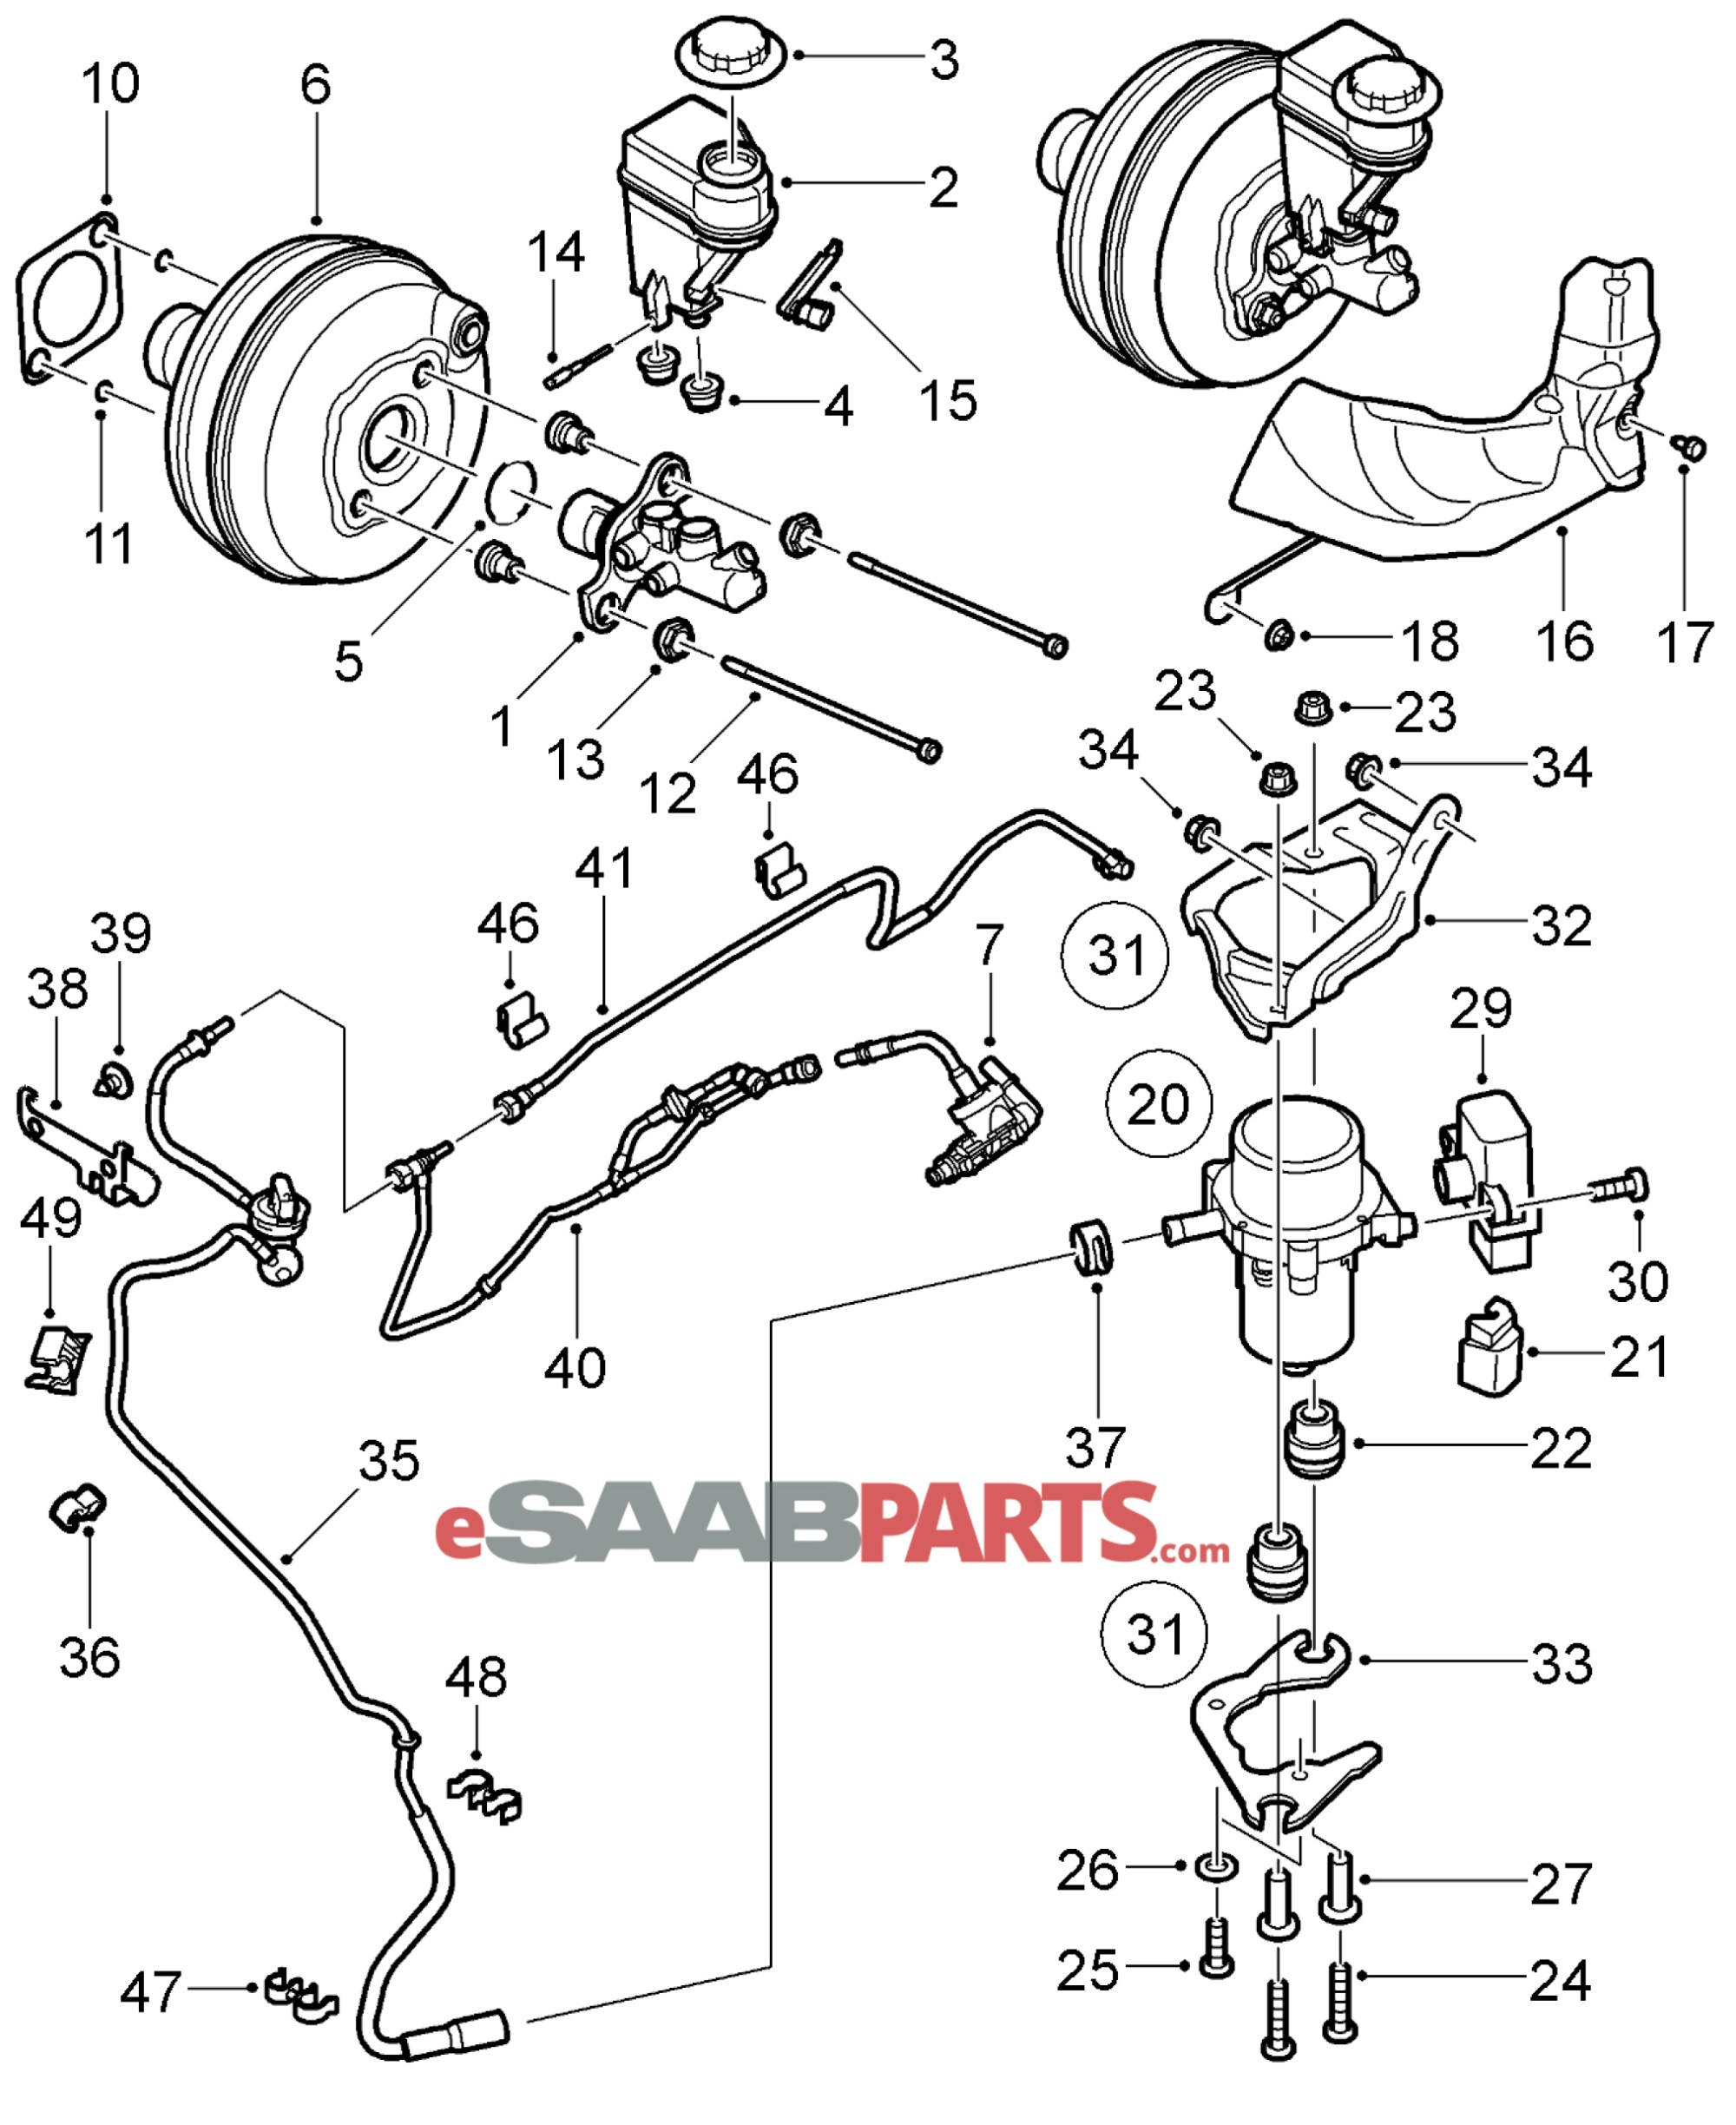 hight resolution of 2000 saab 9 3 vacuum hose diagram imageresizertool com 2004 volvo xc90 fuse box volvo xc90